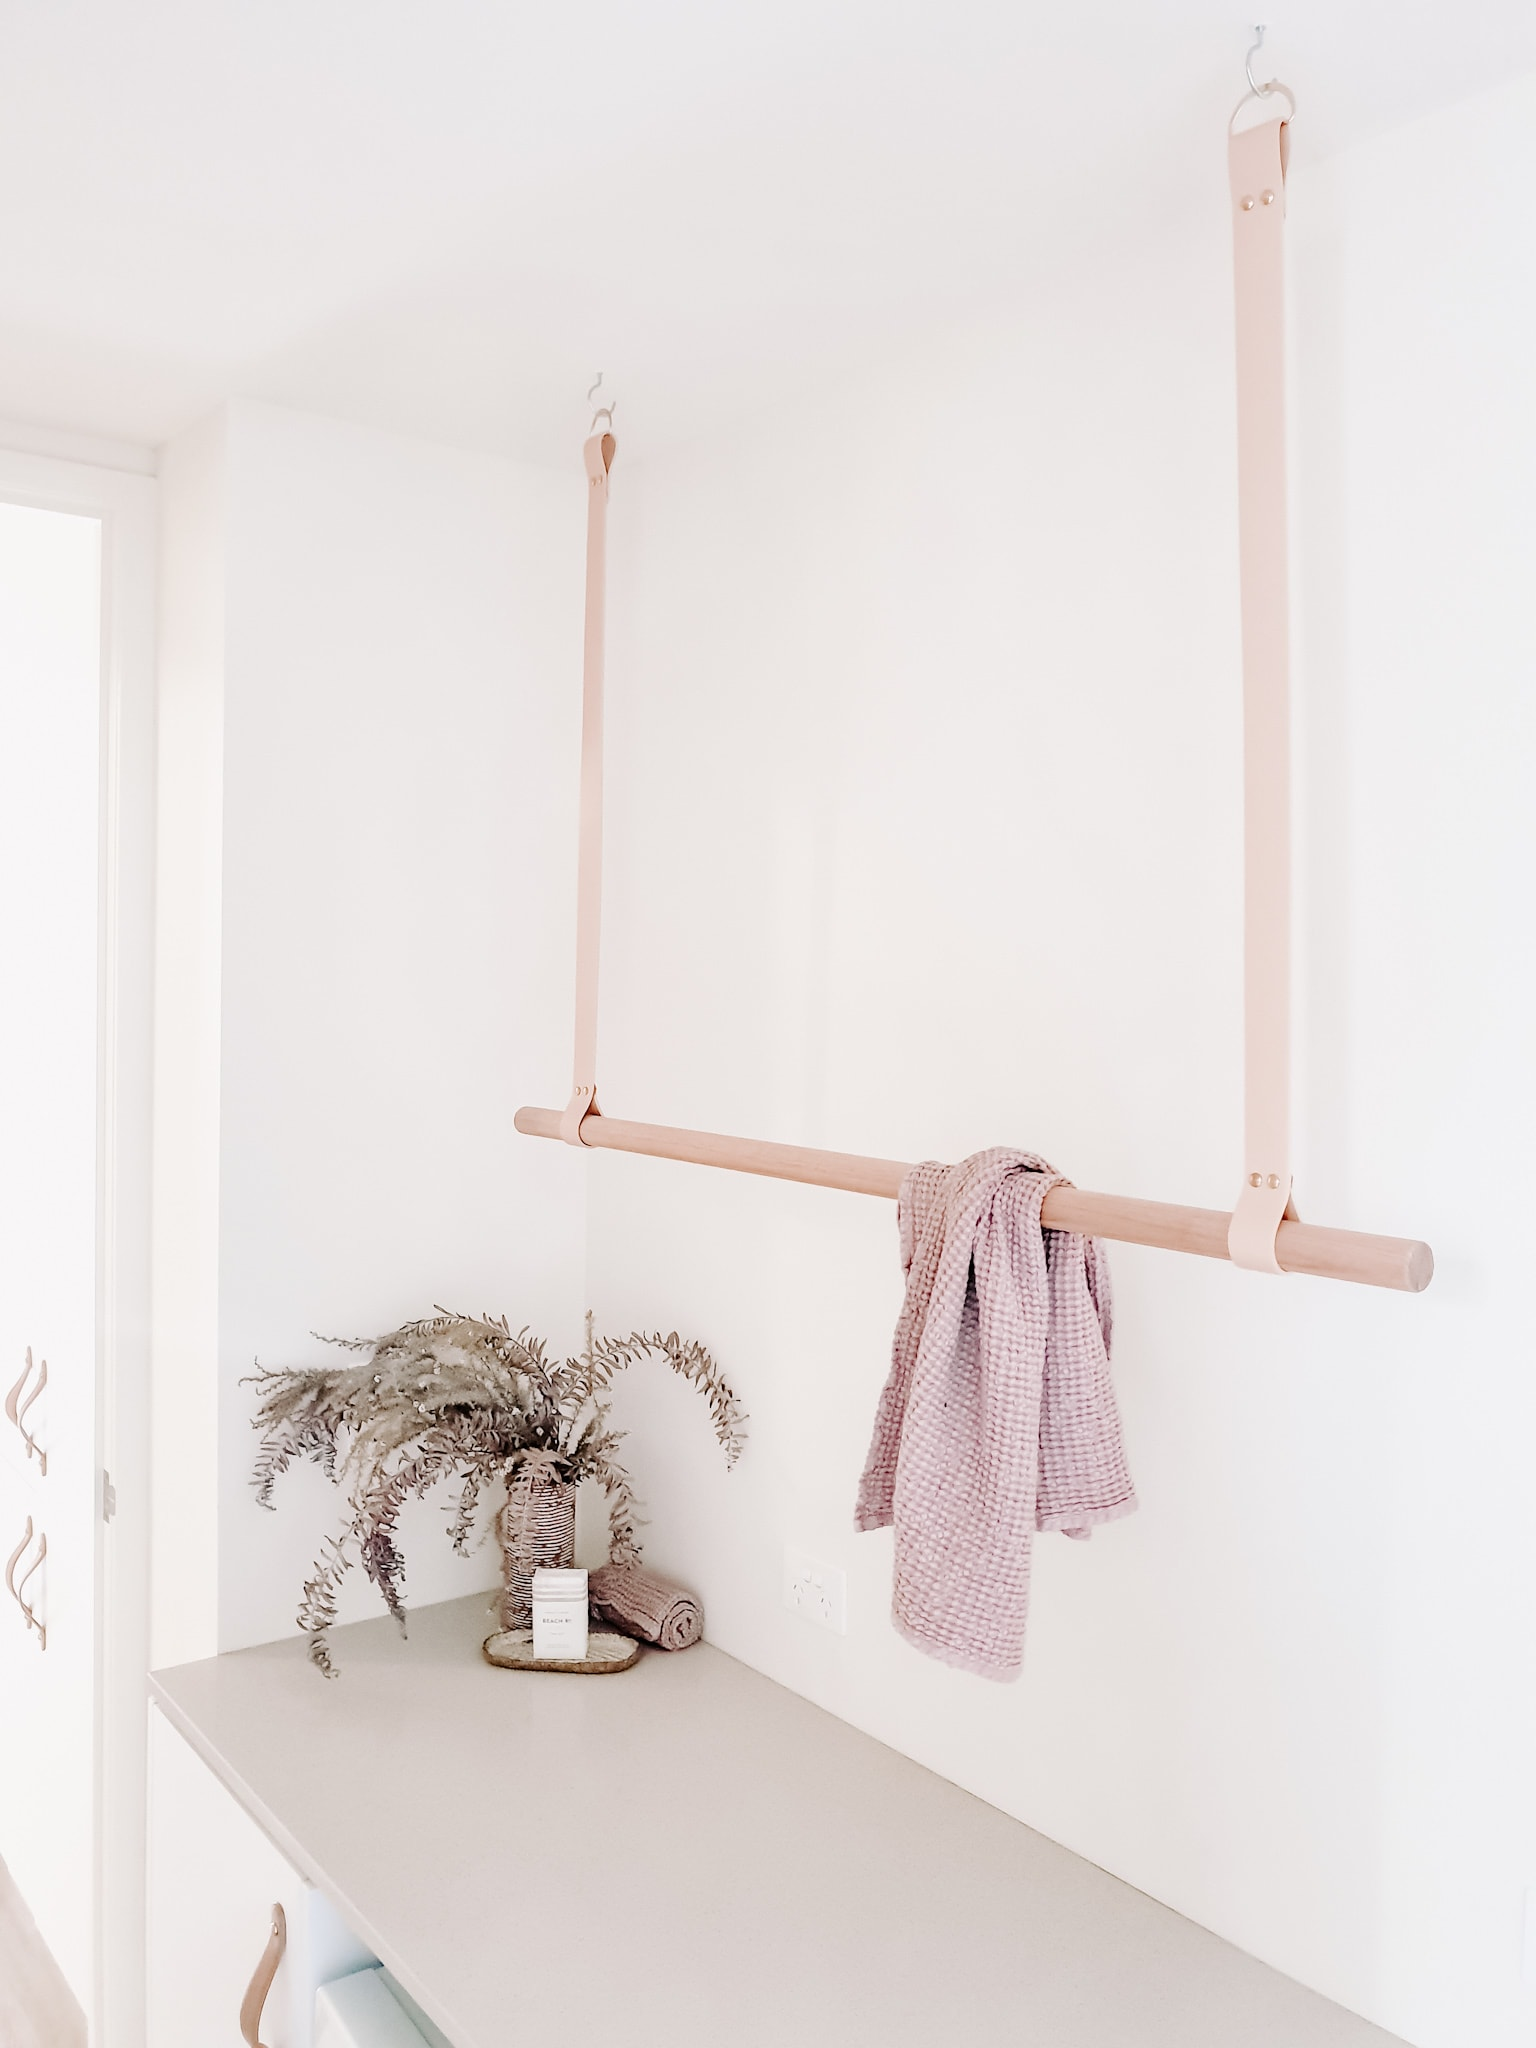 leather strap clothes drying hanger for laundry room